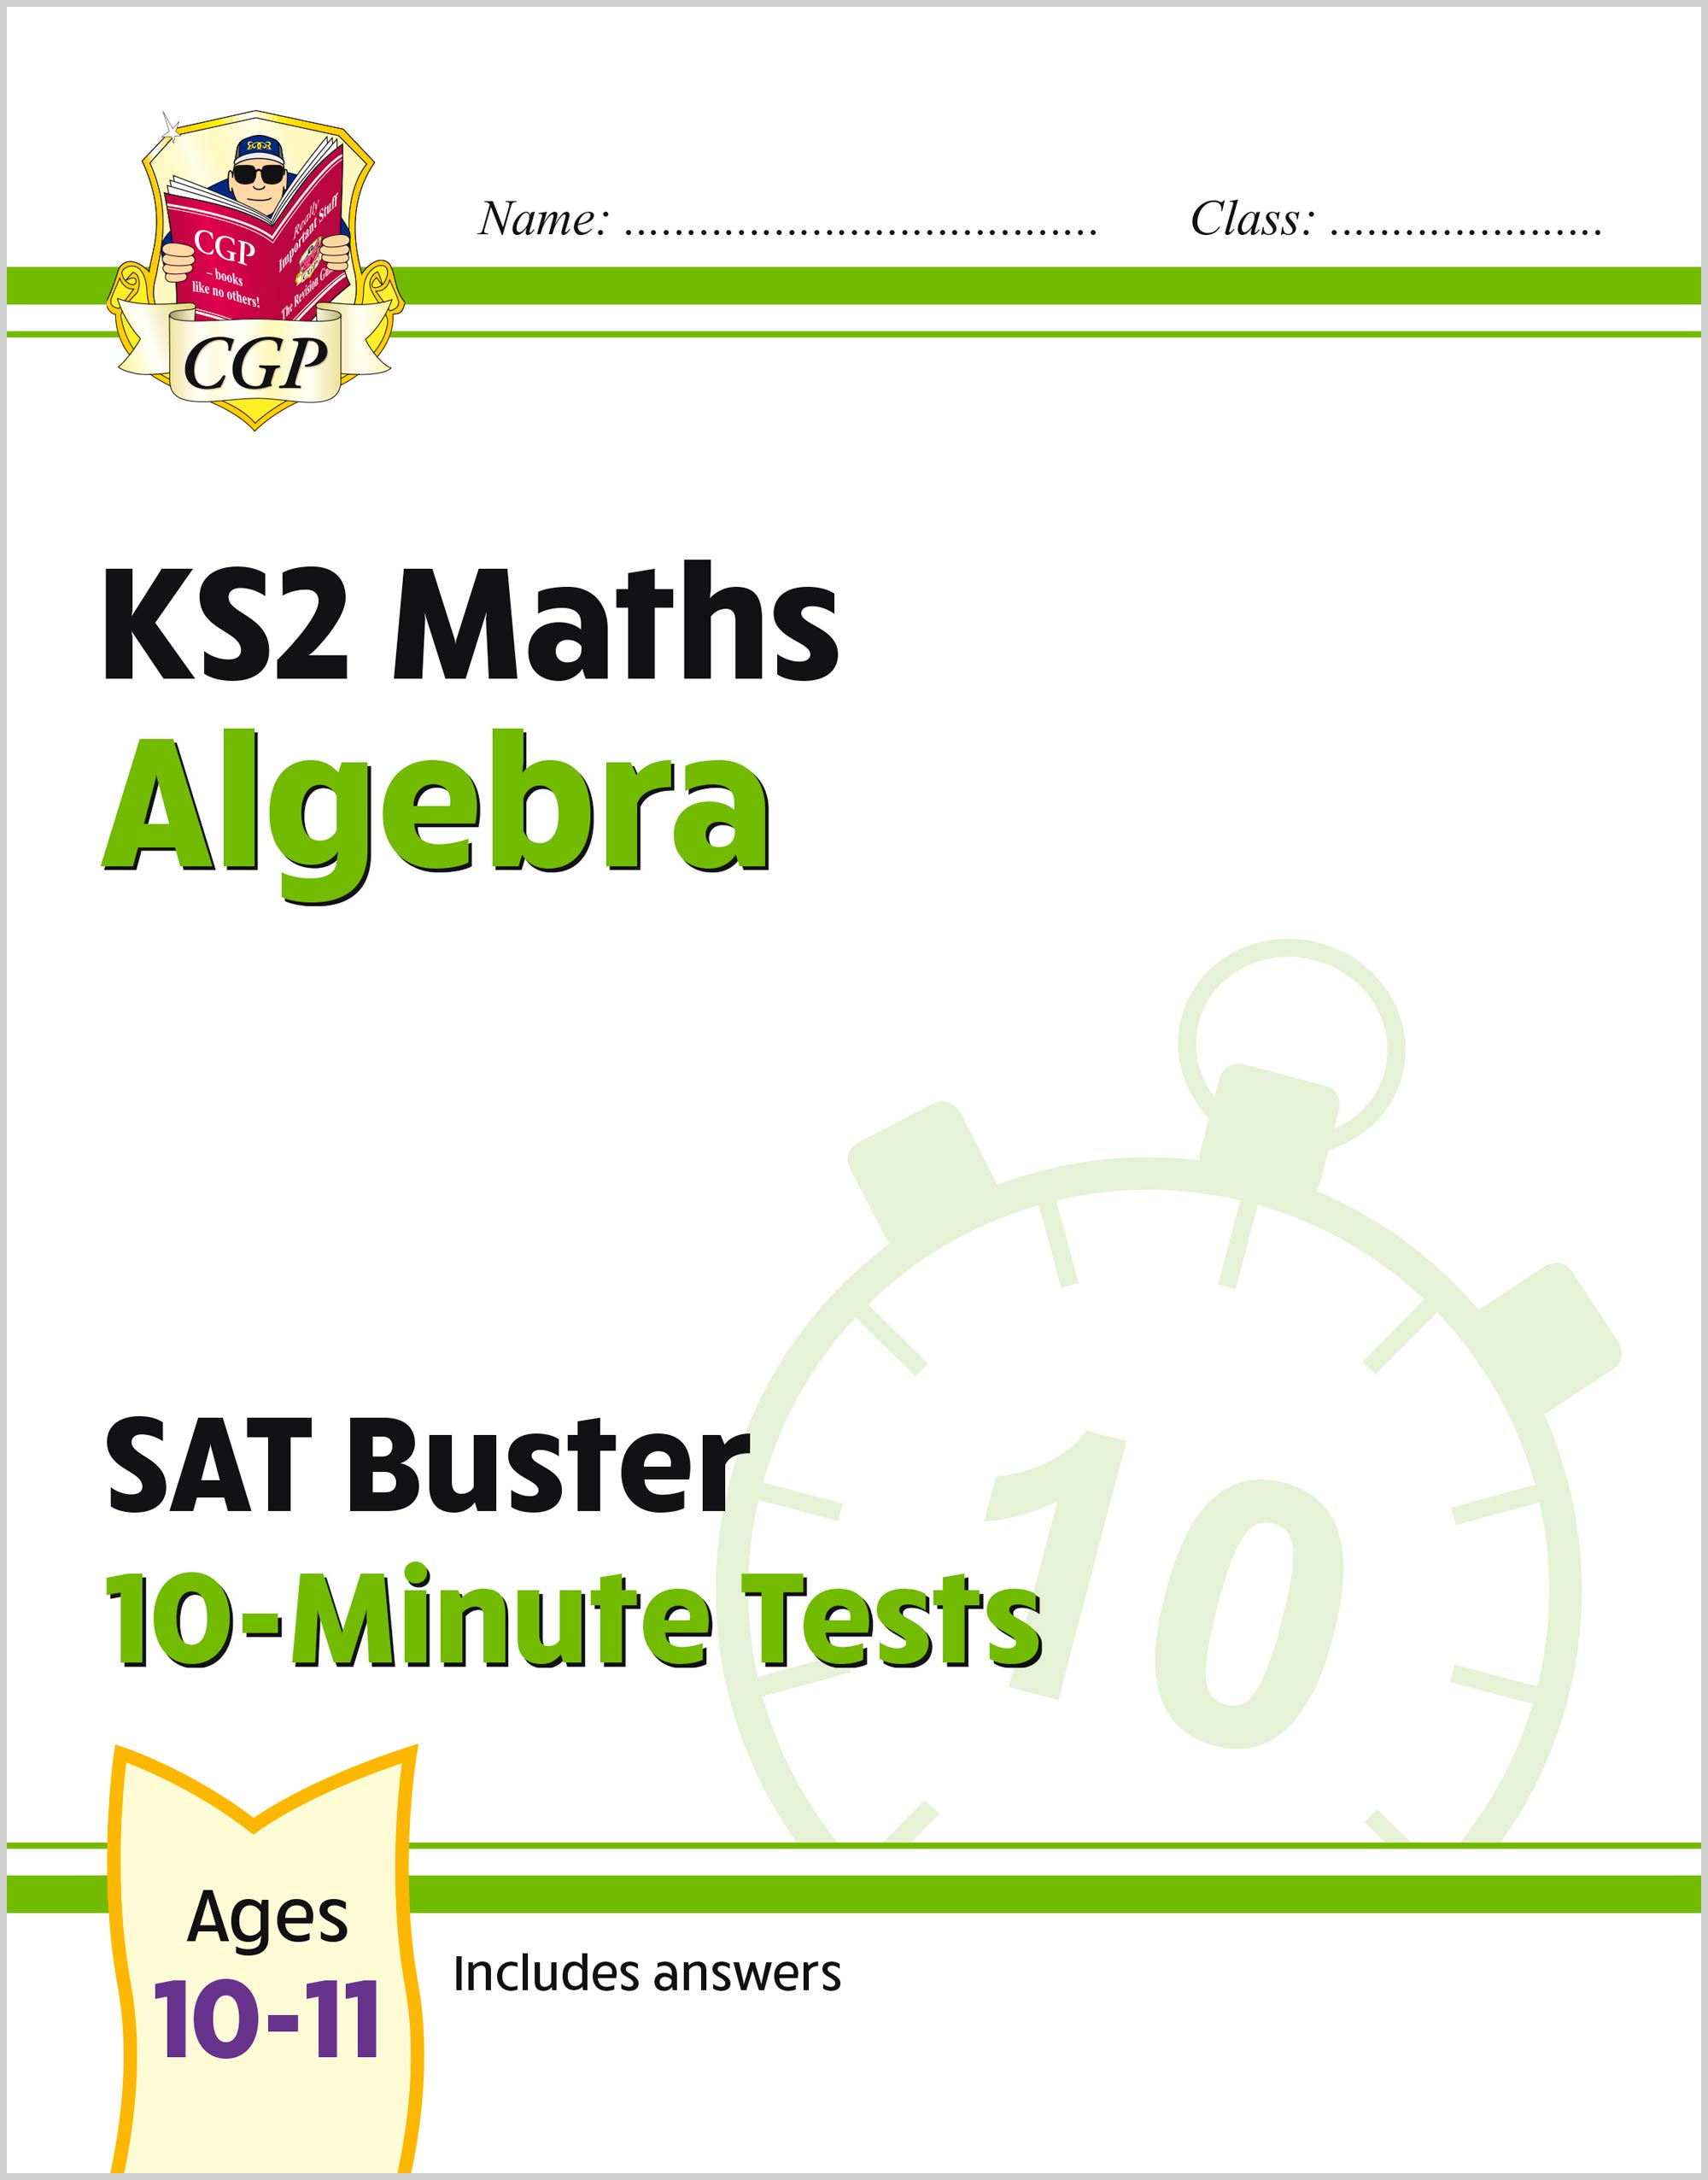 MAXP21 - New KS2 Maths SAT Buster 10-Minute Tests - Algebra (for the 2020 tests)